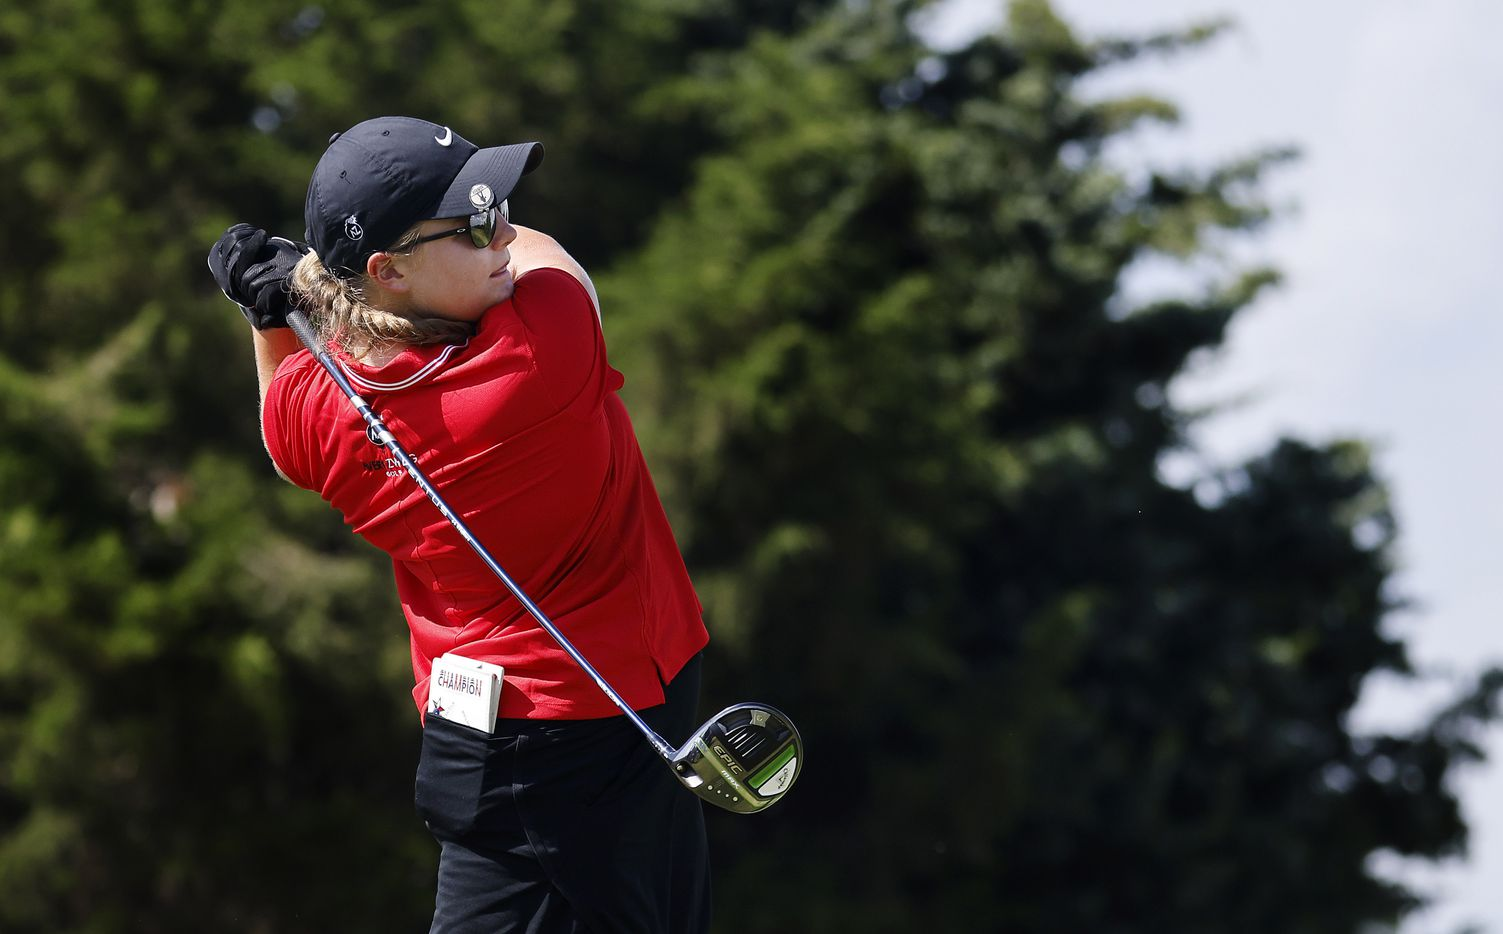 Amateur golfer Avery Zweig, 14, of McKinney fowls through on her drive off the 10th tee box during her opening round of the LPGA VOA Classic at the Old American Golf Club in The Colony, Texas, Thursday, July 1, 2021. (Tom Fox/The Dallas Morning News)